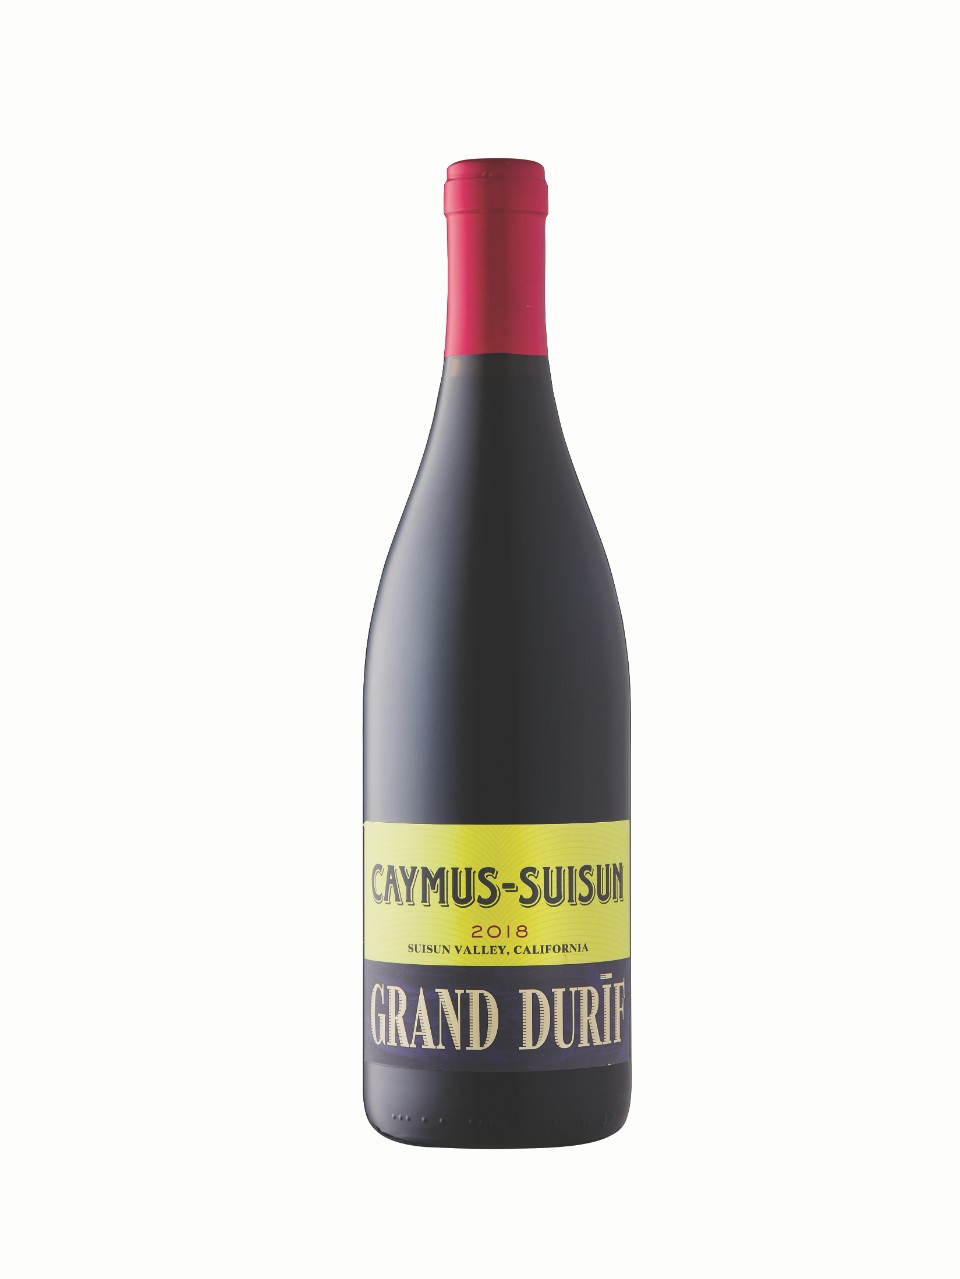 Caymus-Suisun Grand Durif 2018 from LCBO